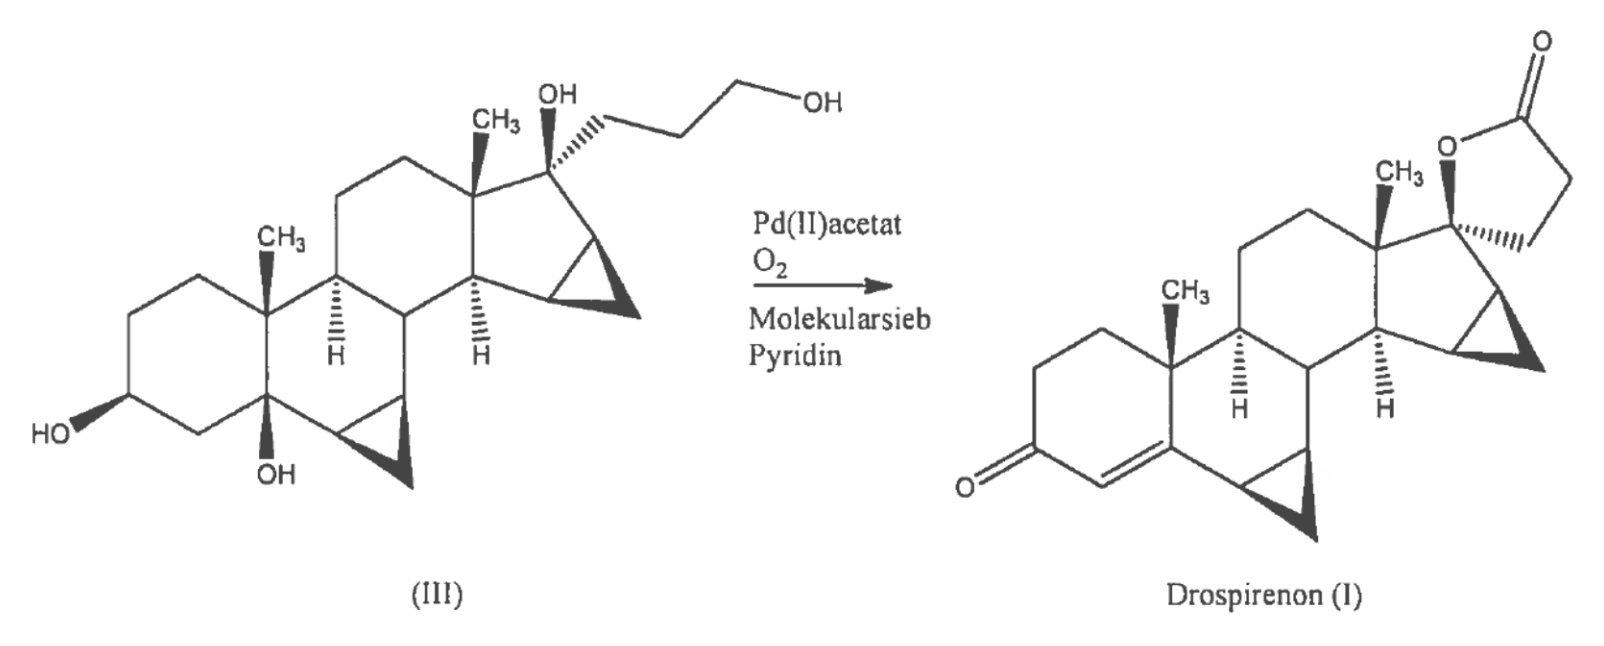 Palladium-catalyzed one-step synthesis of drospirenone